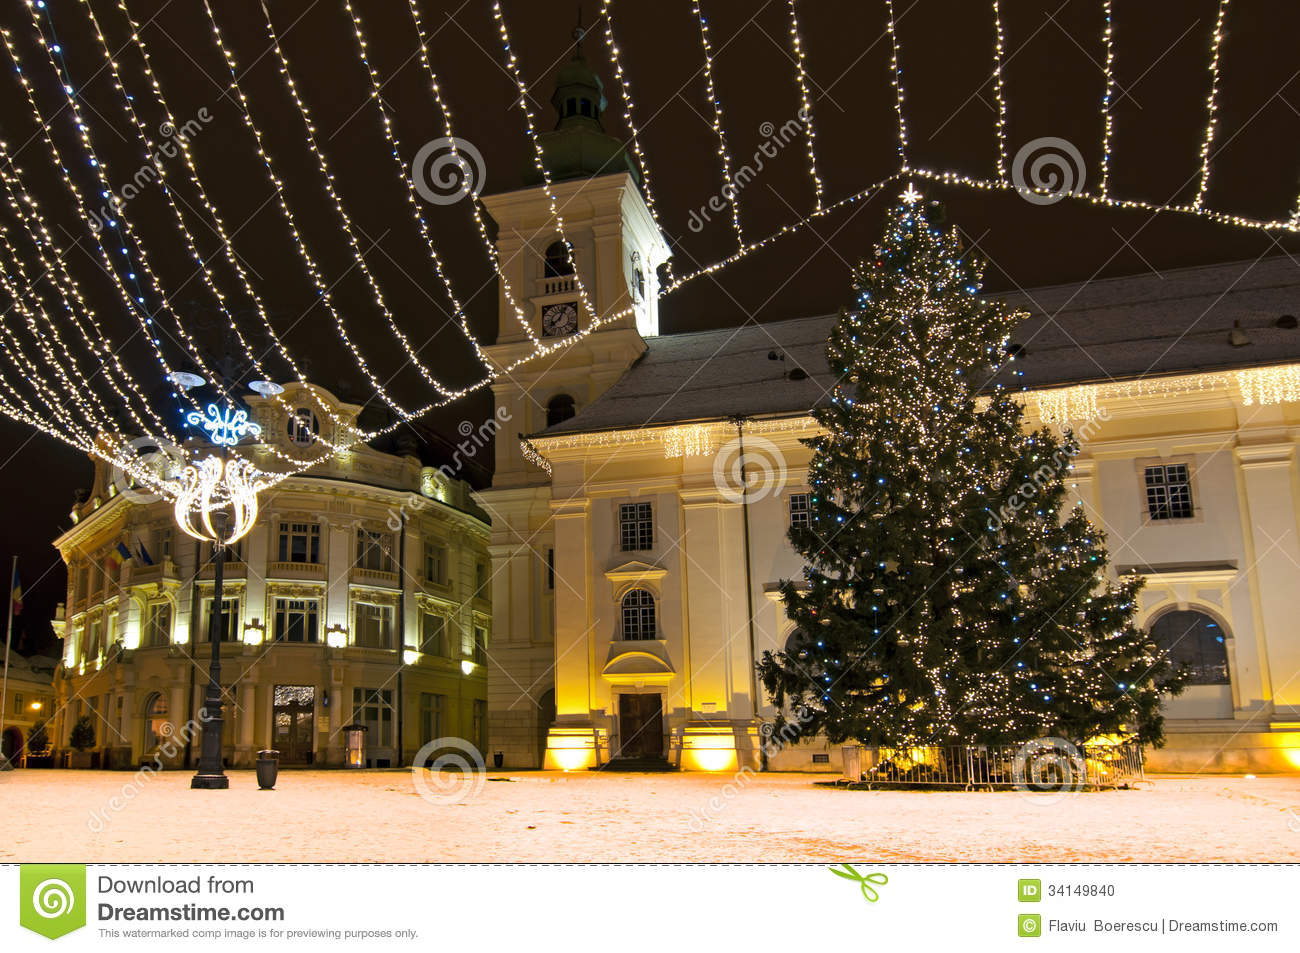 Christmas tree and lights in old town square